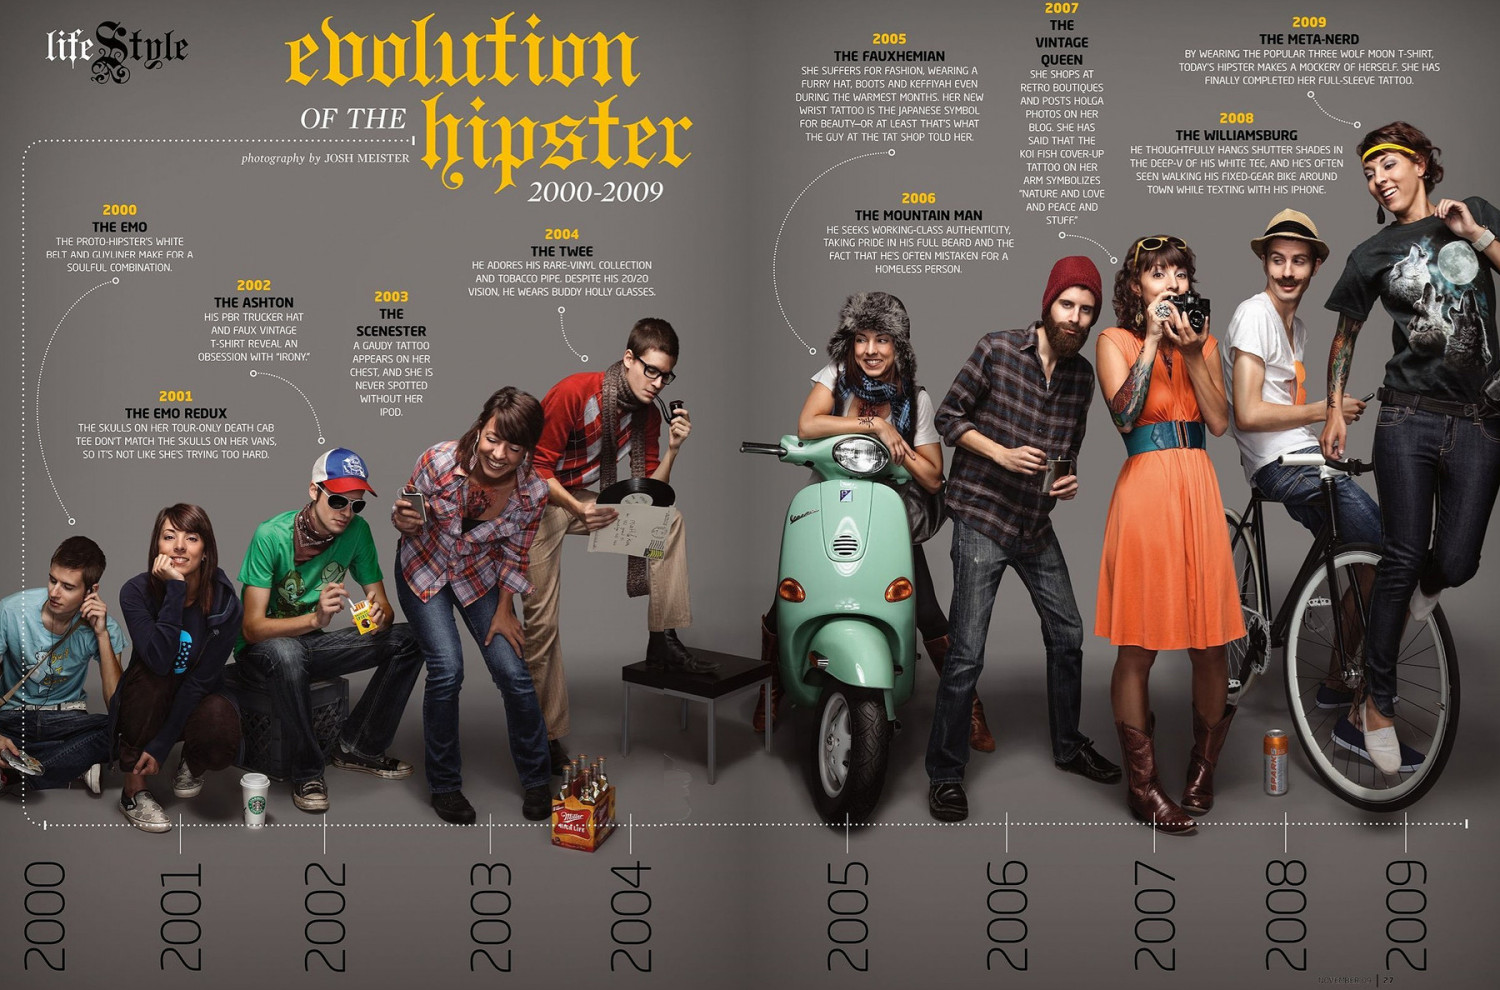 The Evolution of a Hipster Infographic